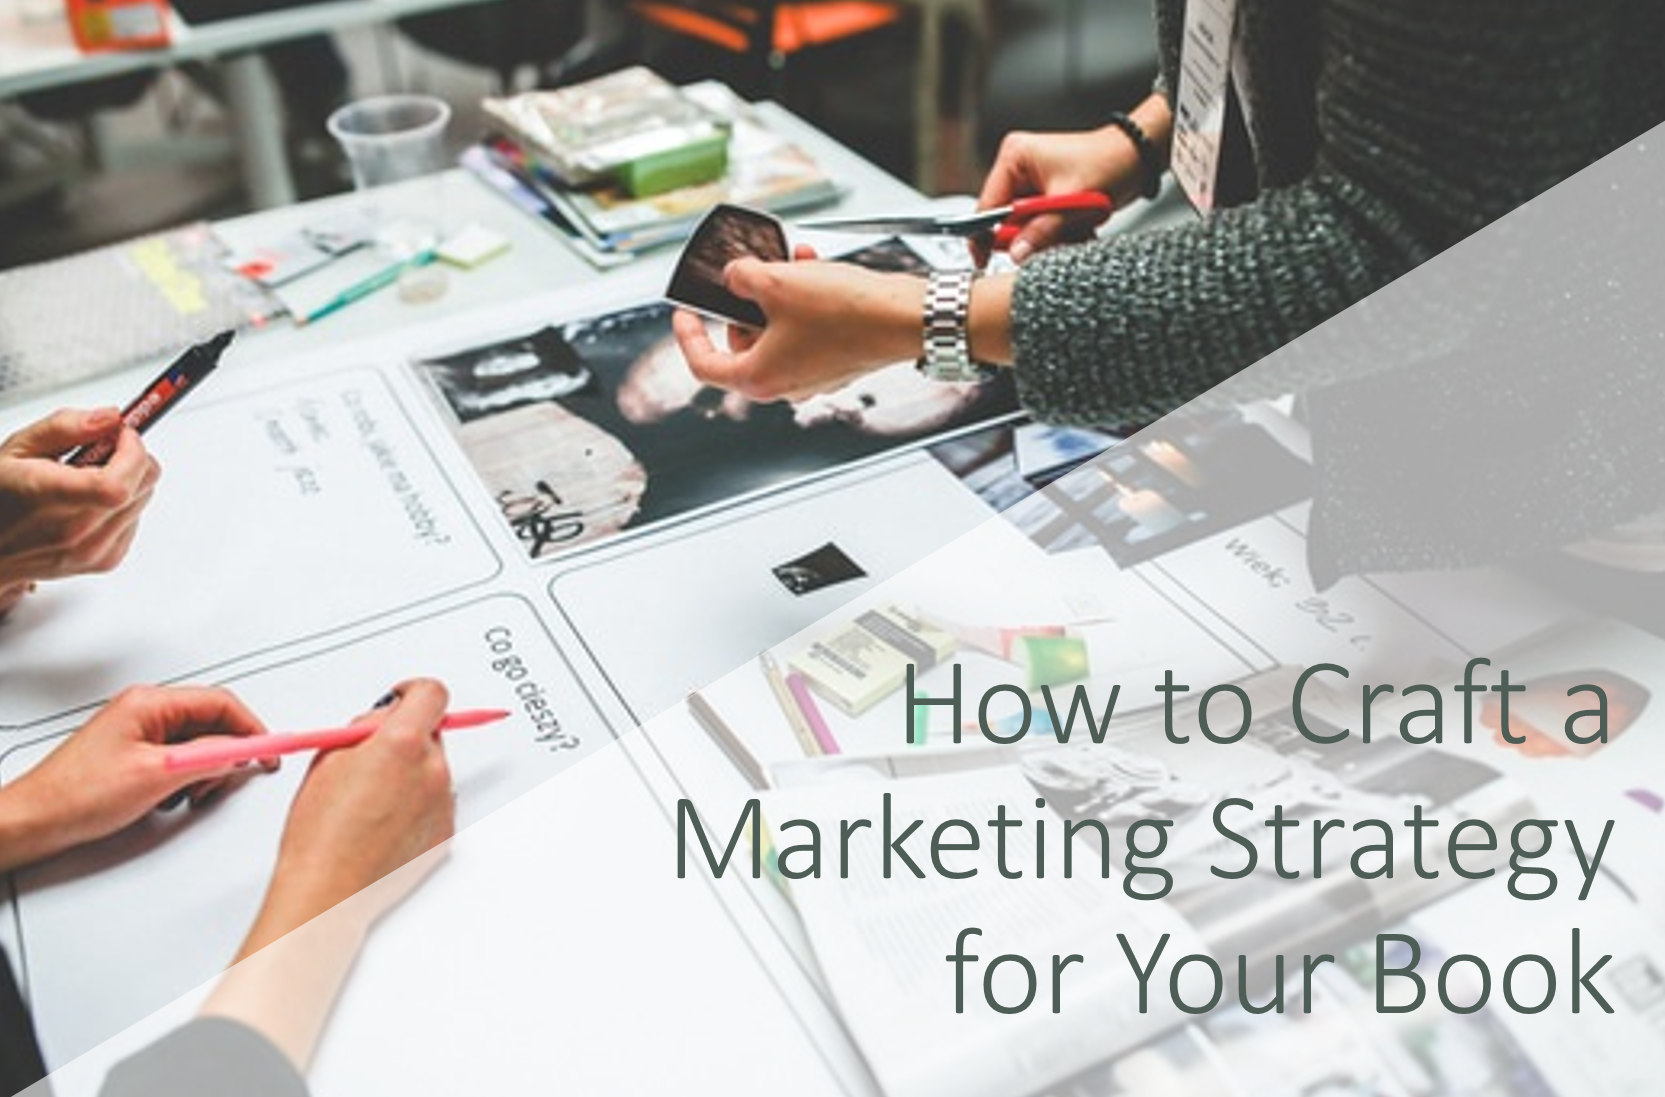 crafting_marketing_strategy_your_book